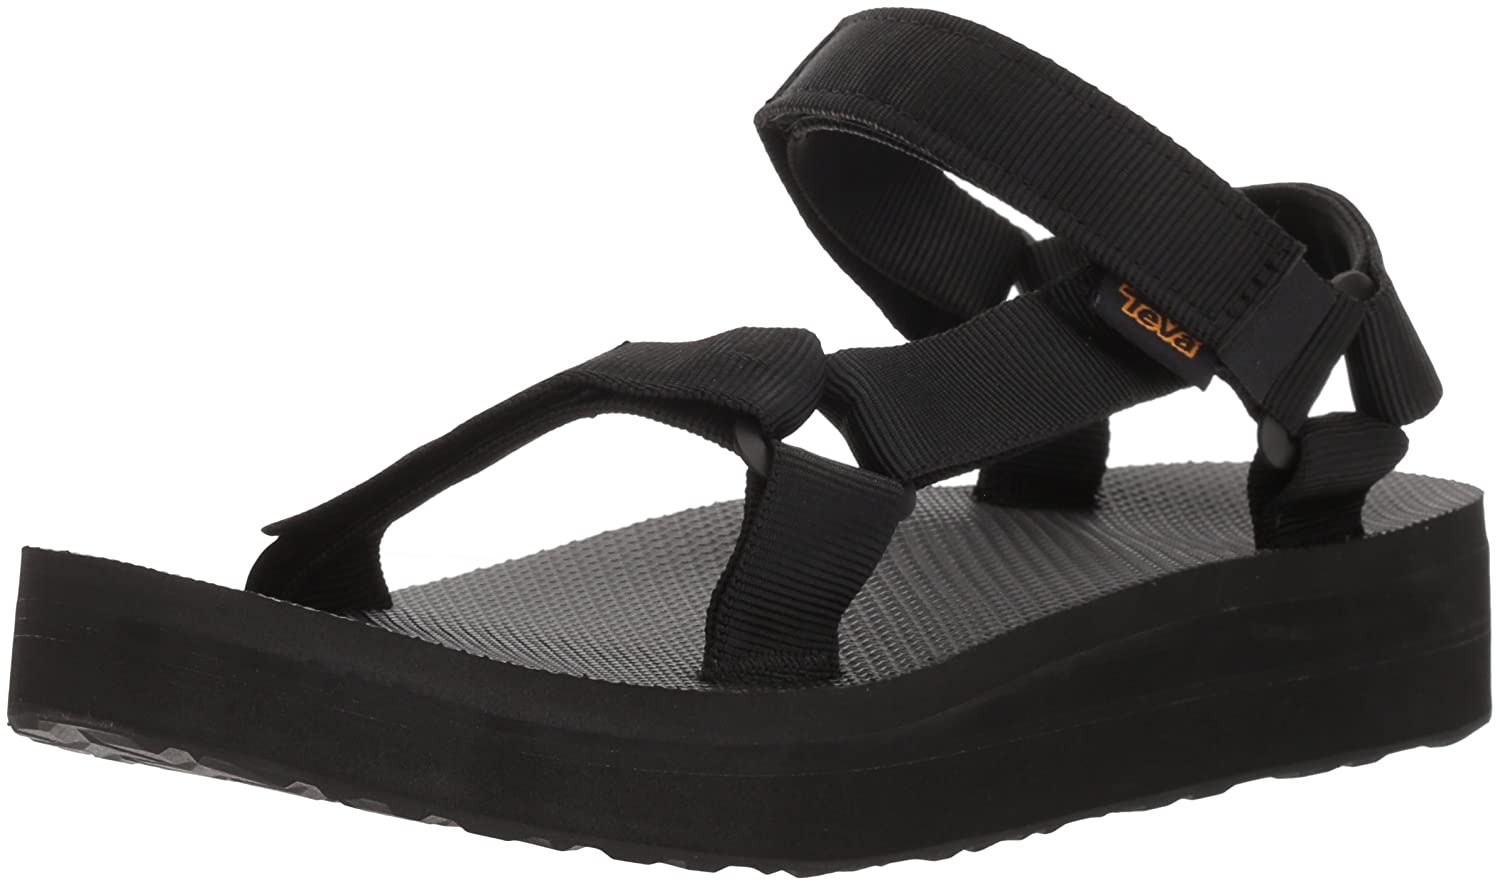 3820aaddc696 Amazon.com  Teva Women s W Midform Universal Wedge Sandal  Shoes